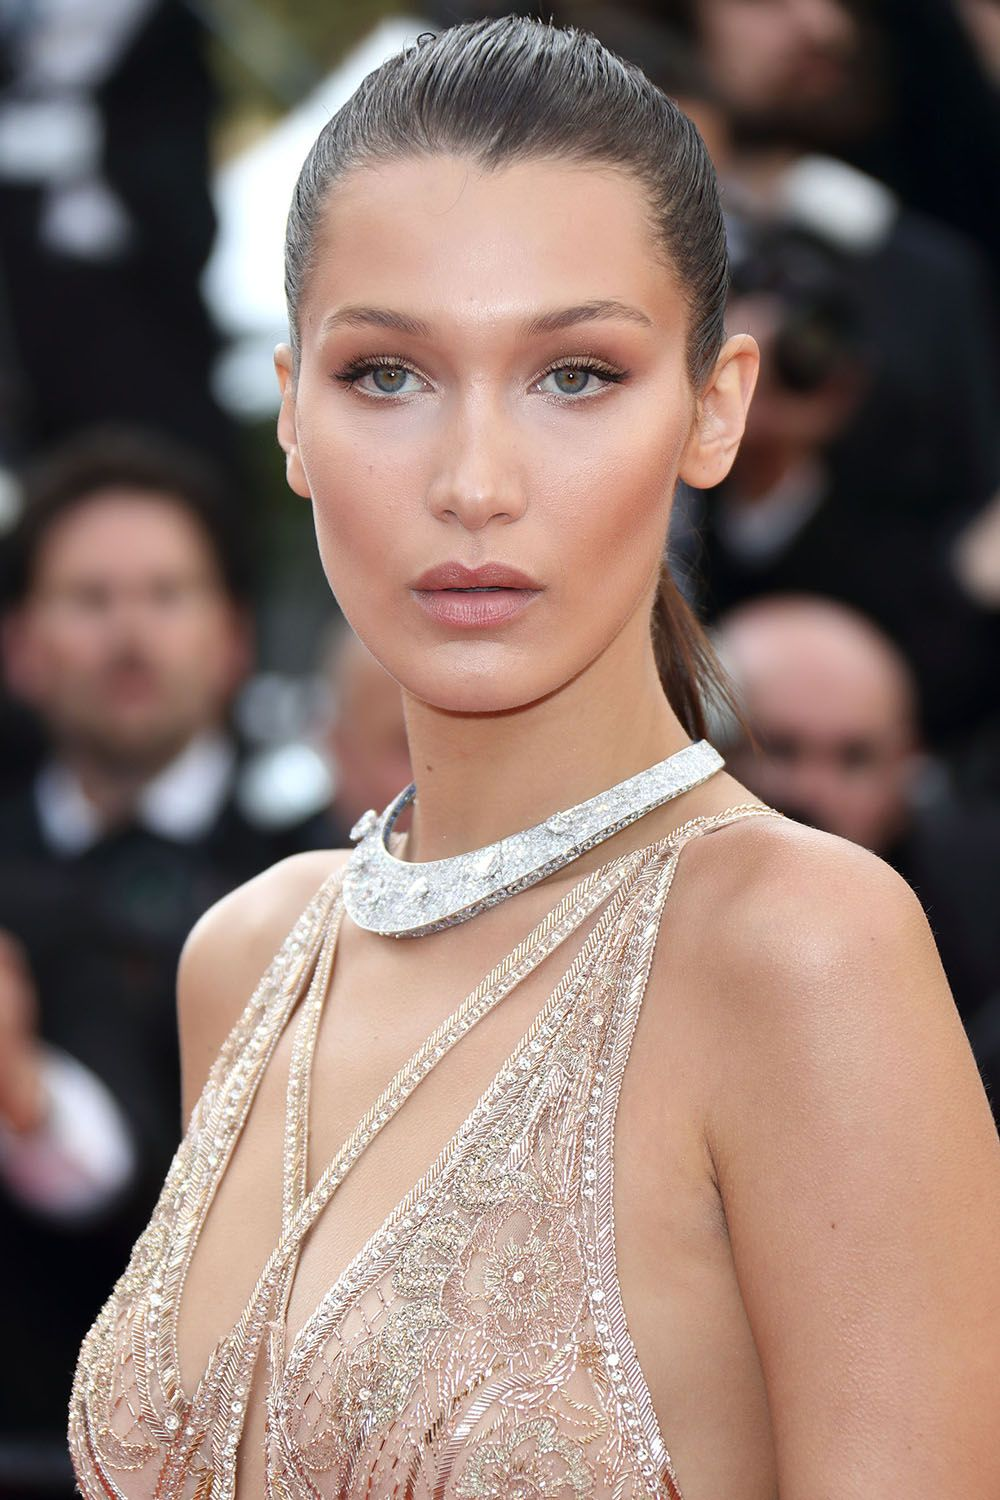 <p>Bella Hadid's rise to supermodel status has been happening for quite some time. But it wasn't until she stepped-out at the Cannes Film Festival, looking like a chiseled queen of contouring, that her title was cemented. </p>